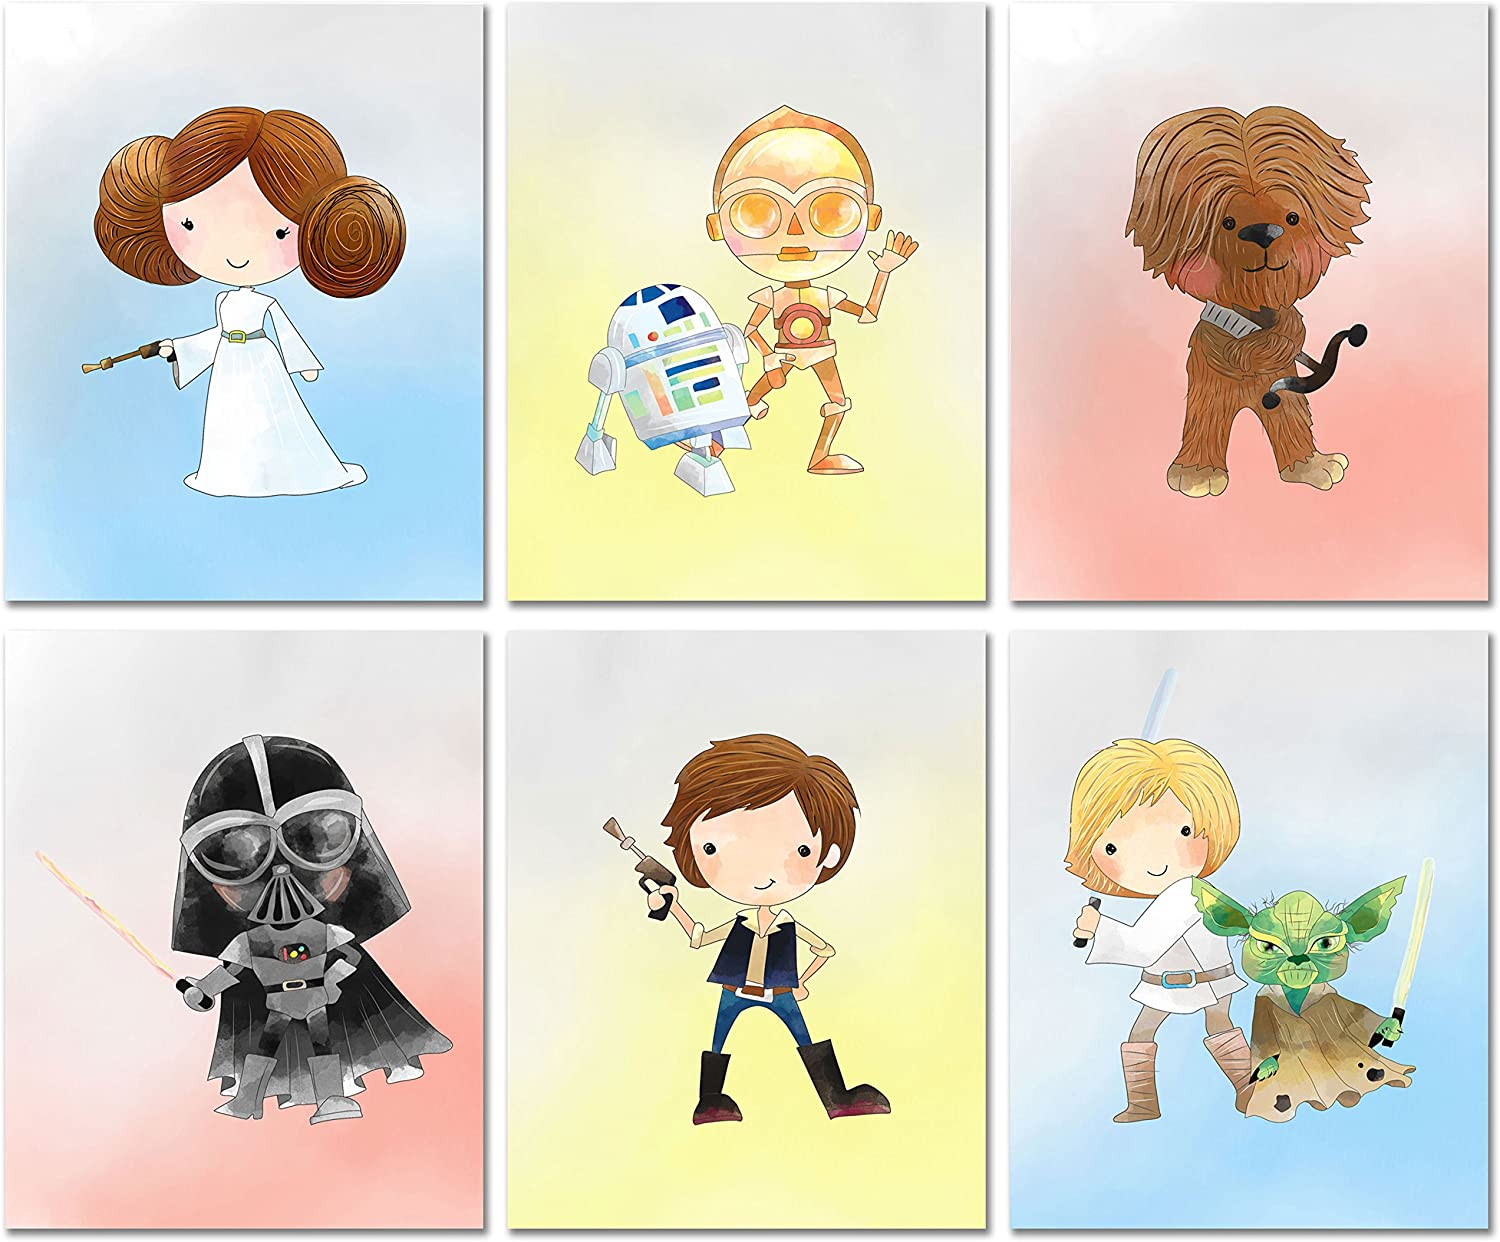 Star Wars Nursery Decor Prints New Orleans Mall - Set Quantity limited x of 8 10 inches 6